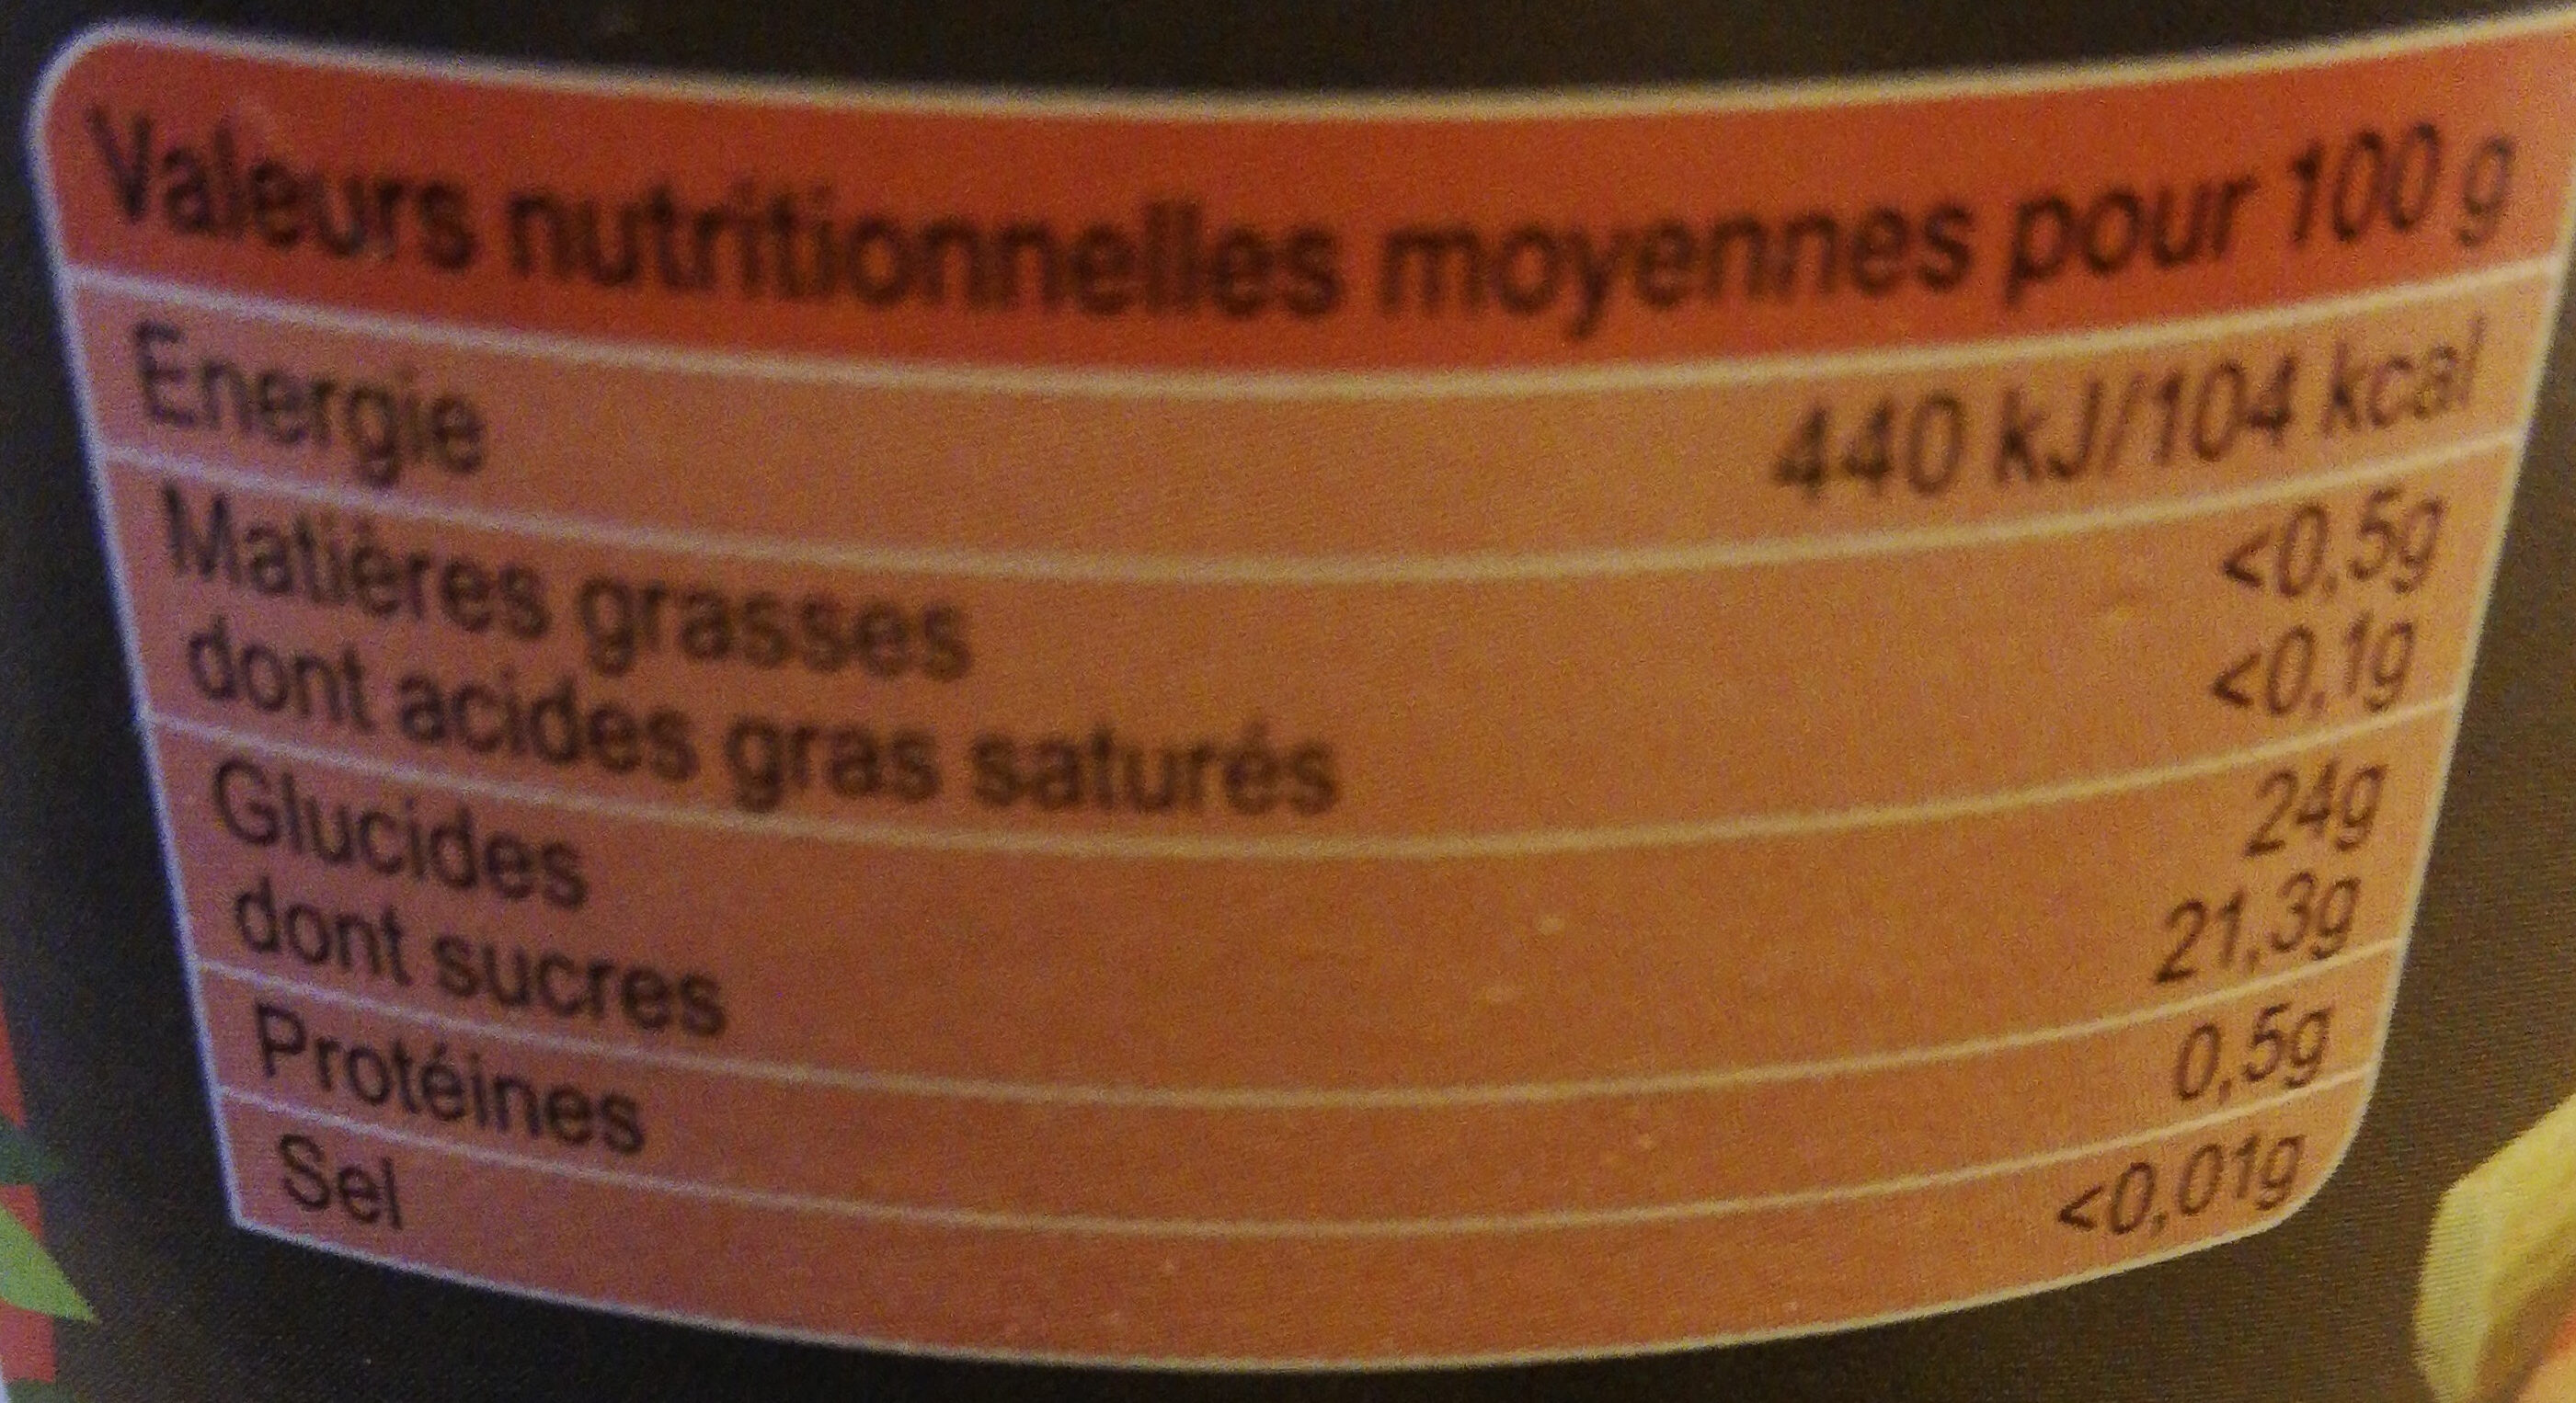 Compote de rhubarbe - Nutrition facts